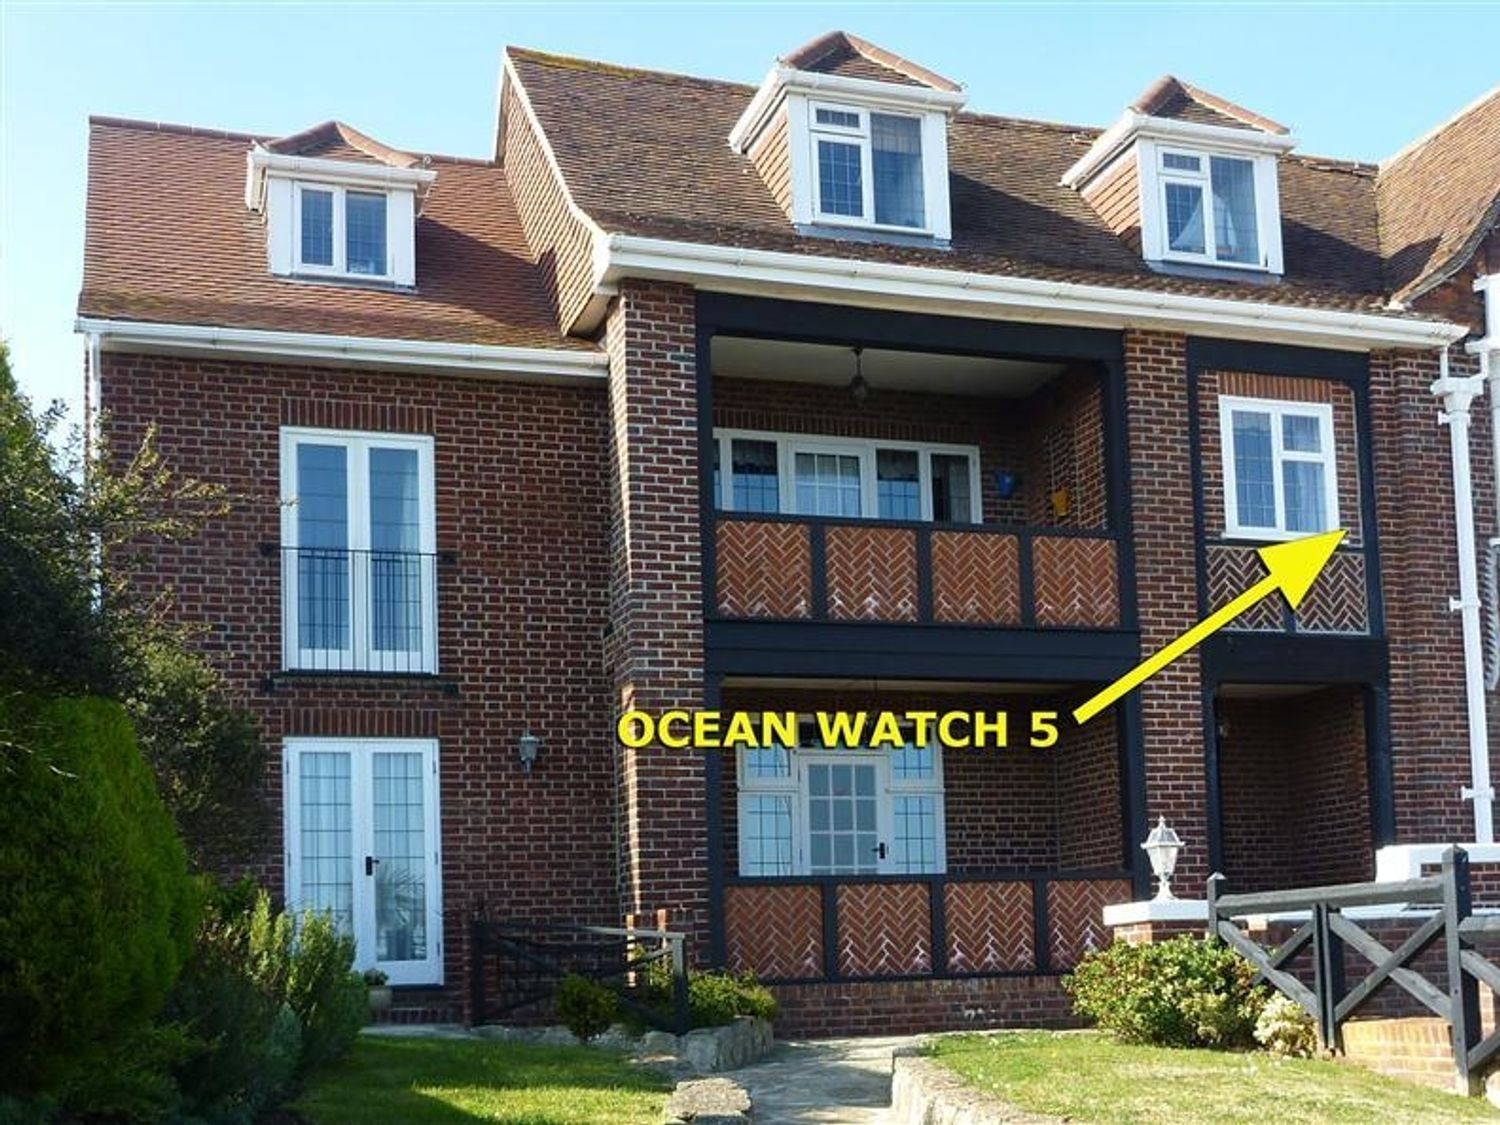 Ocean Watch 5 - Dorset - 994506 - photo 1